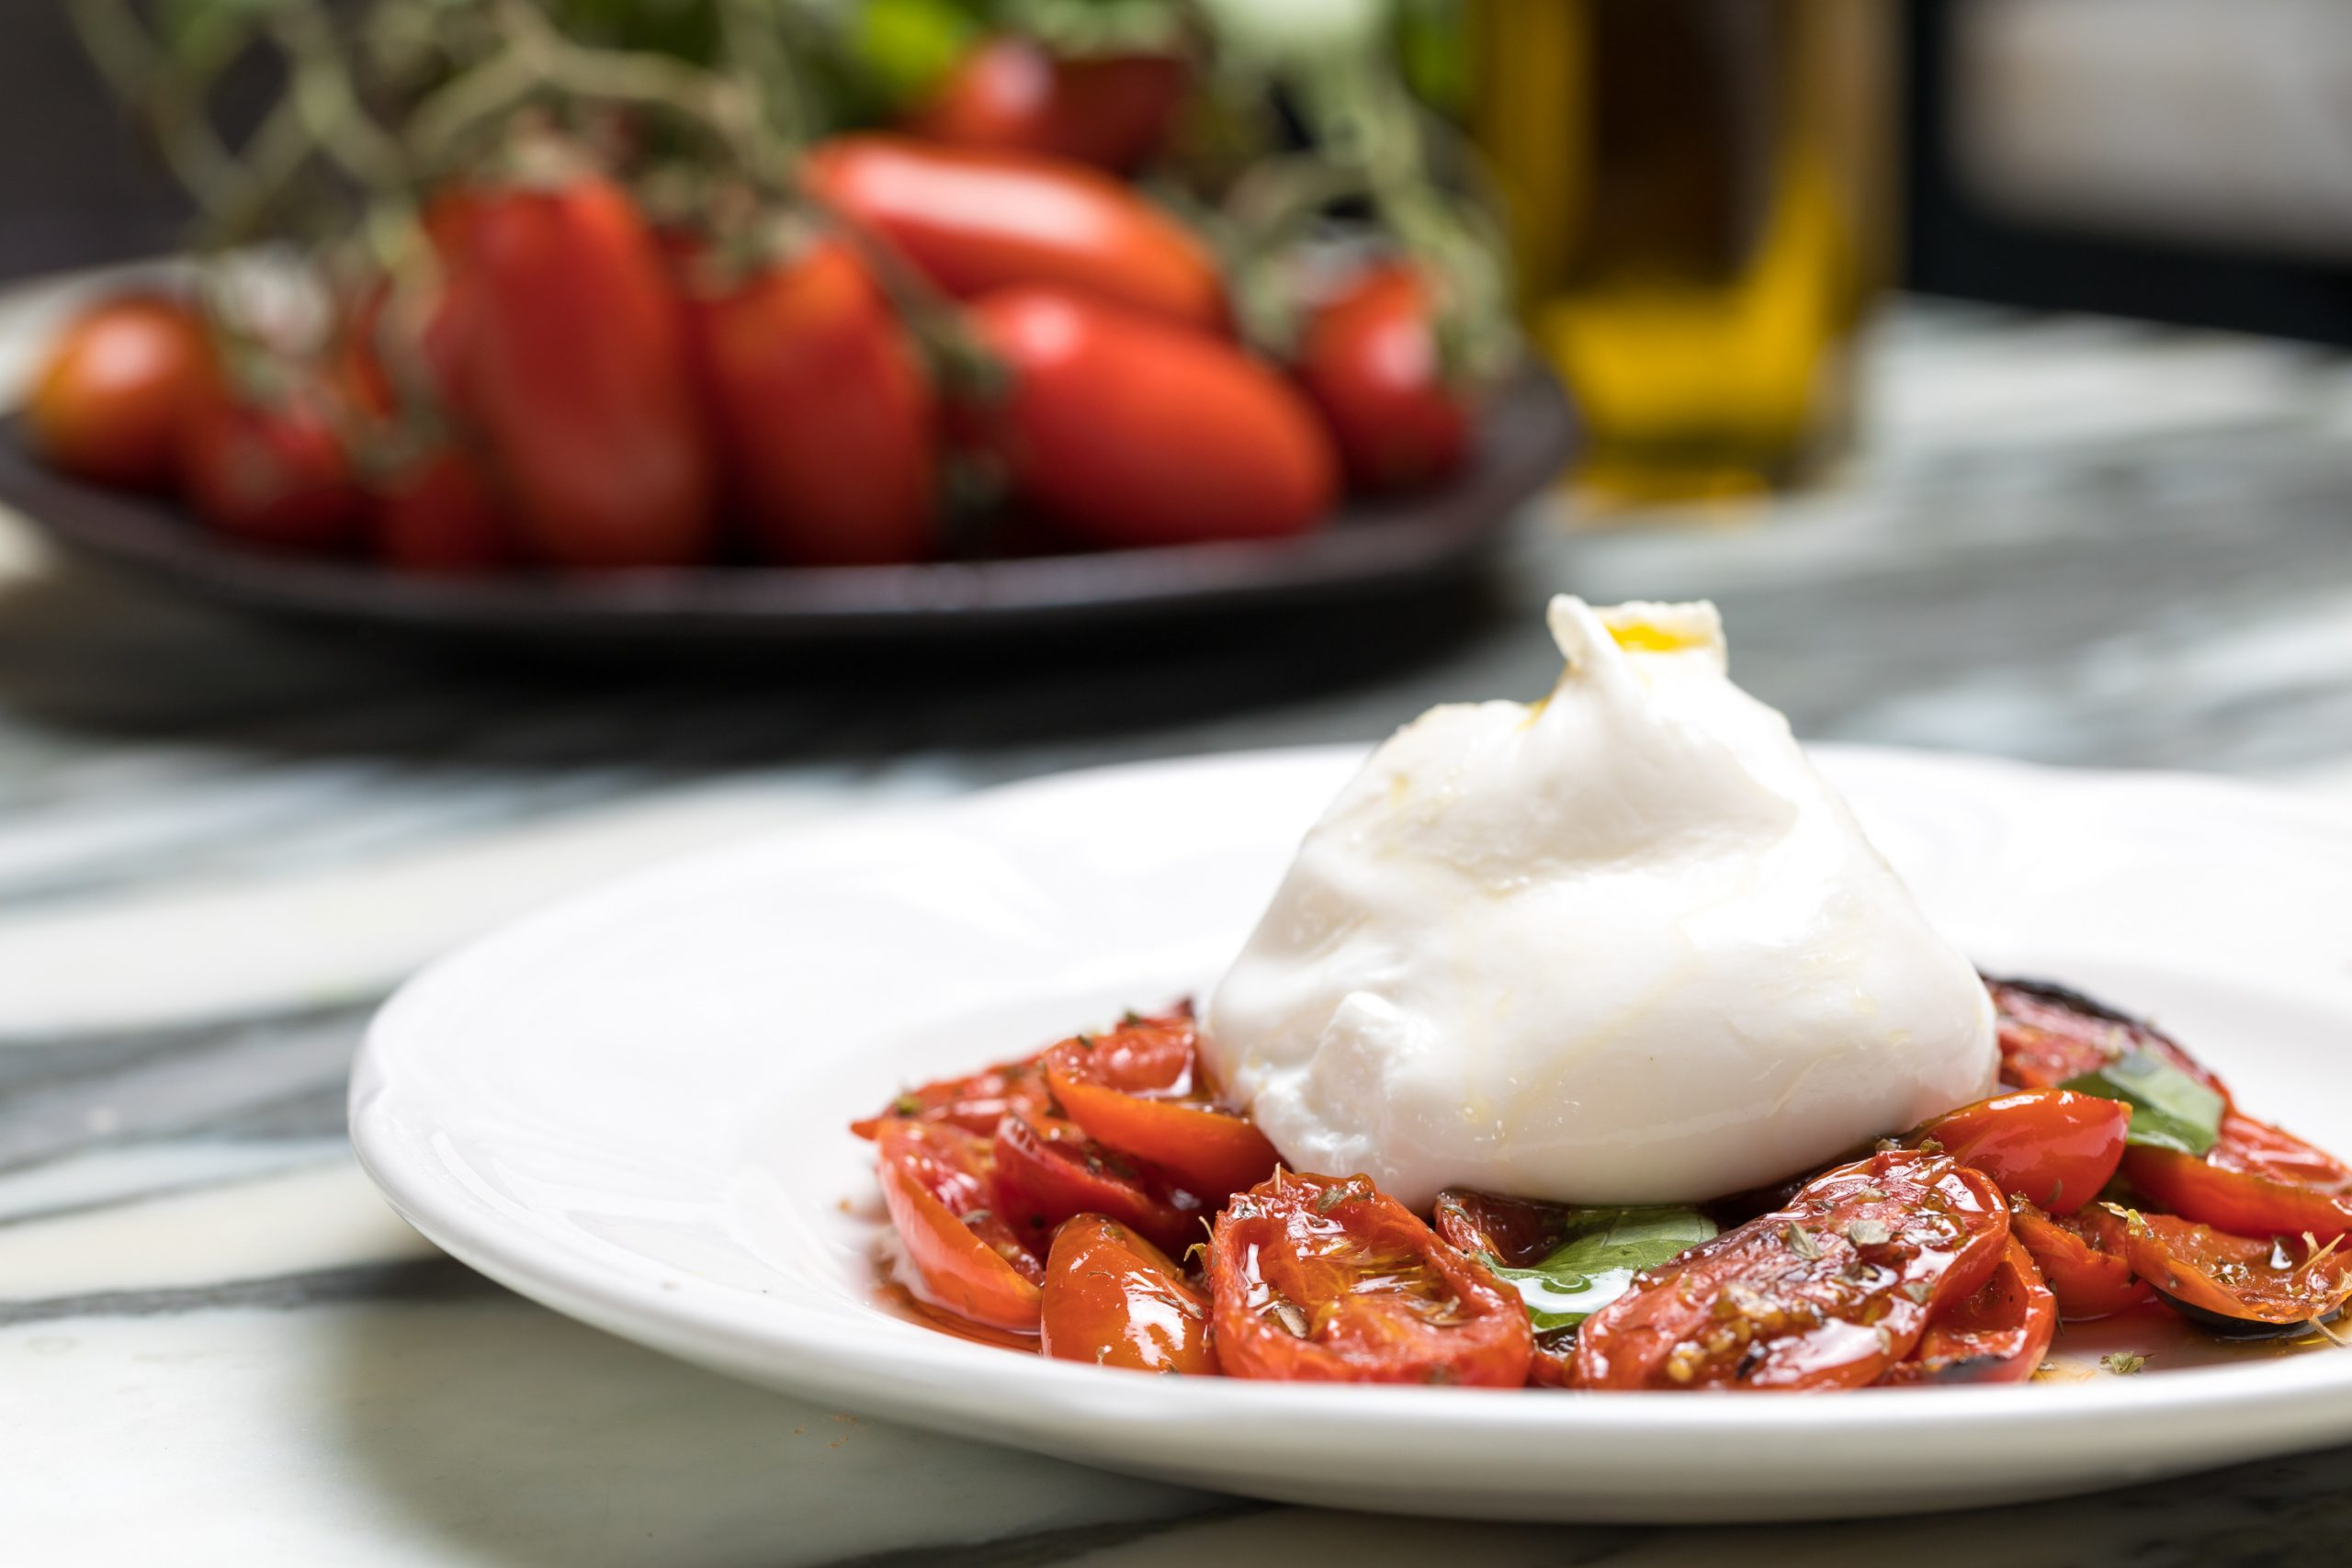 Mozzarella sitting on a bed of tomatoes - Healthy Italian Dishes